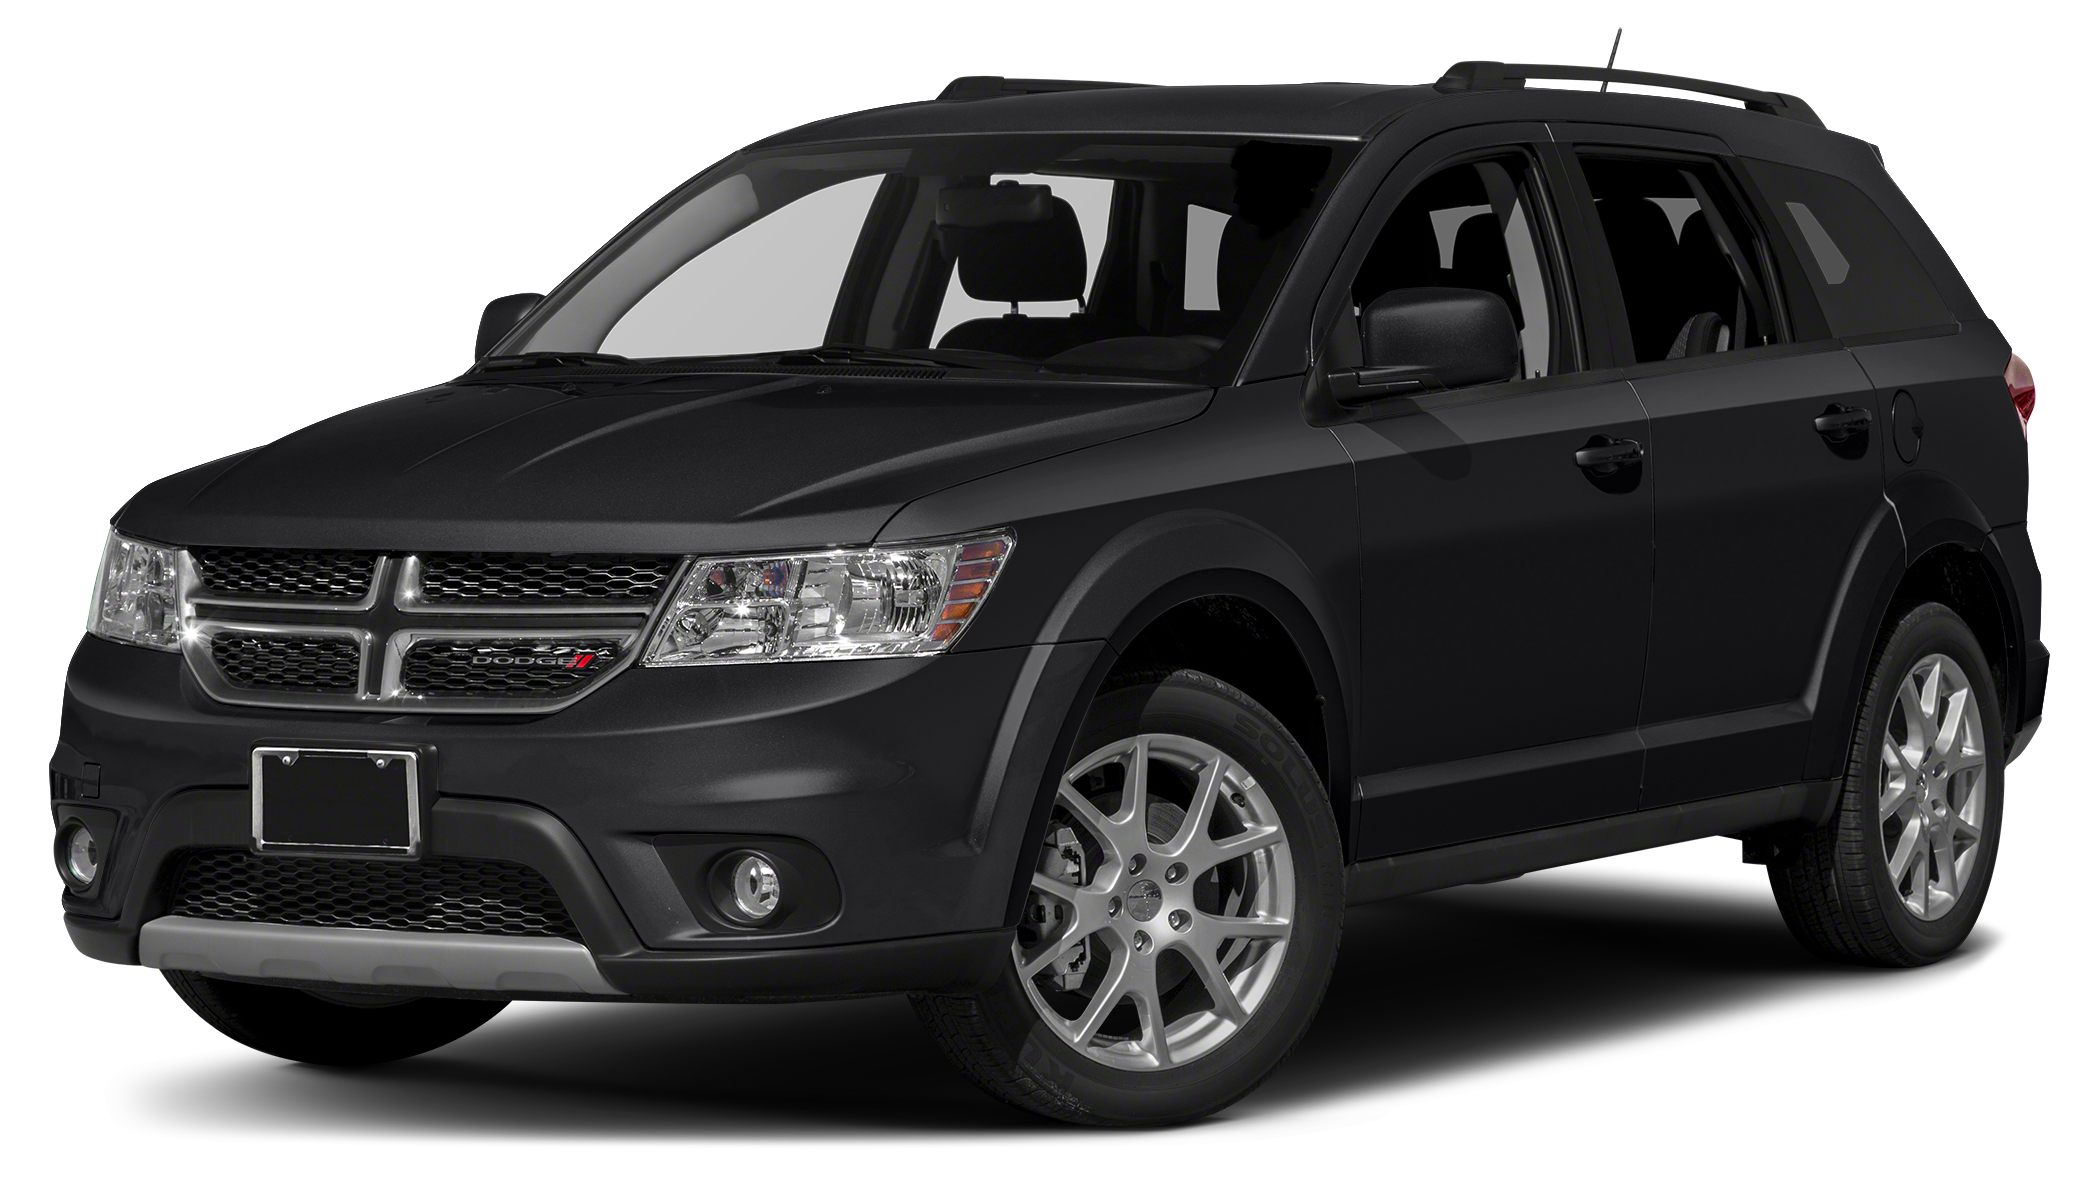 2016 Dodge Journey SXT 2016 Dodge Journey SXT in Black One Year Free Maintanence and push button